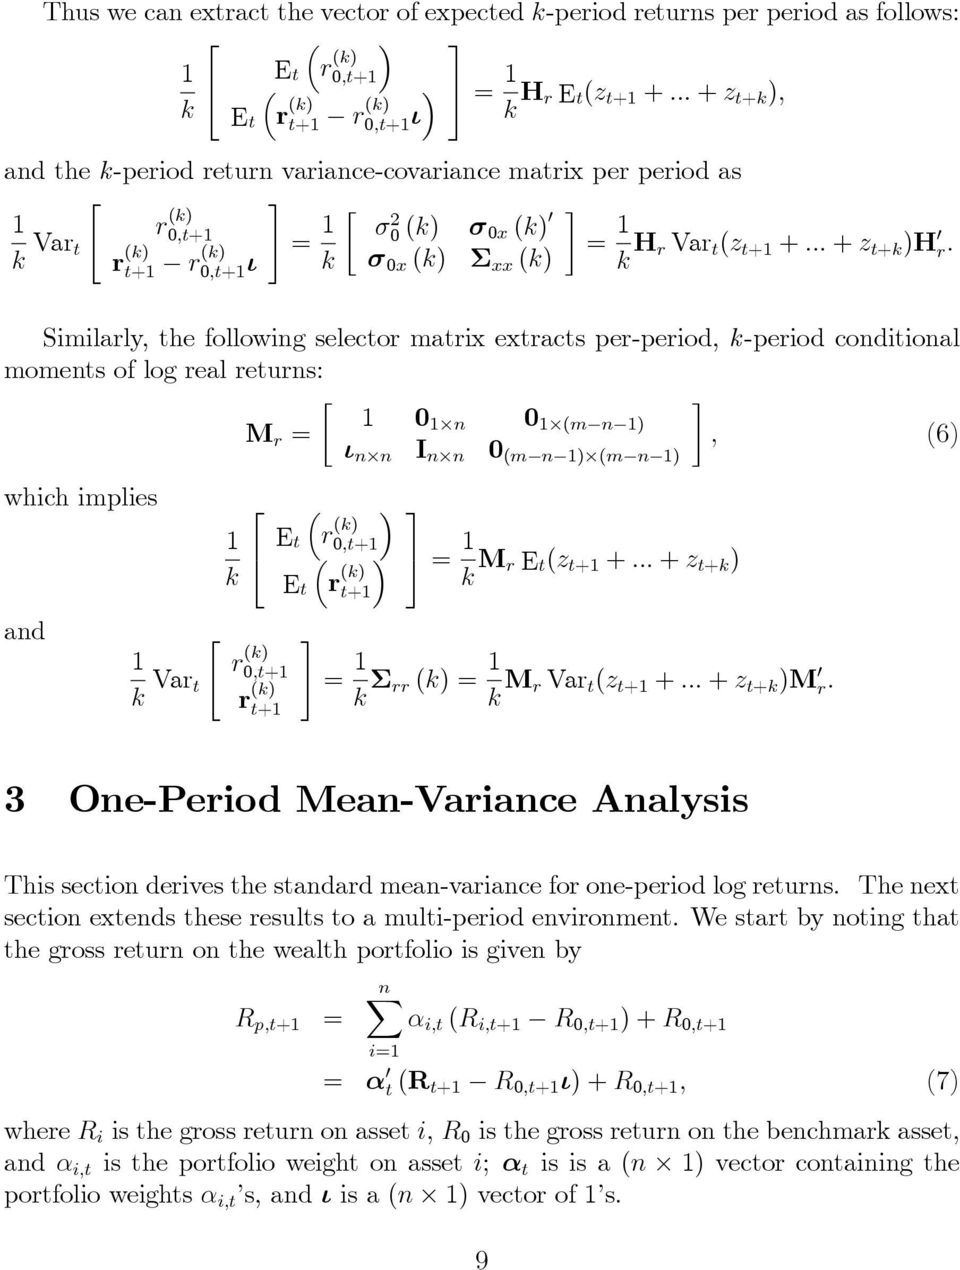 Similarly, the following selector matrix extracts per-period, k-period conditional moments of log real returns: 0 M r = n 0 (m n ), (6) ι n n I n n 0 (m n ) (m n ) which implies Et 0,t+ = k Et k M r